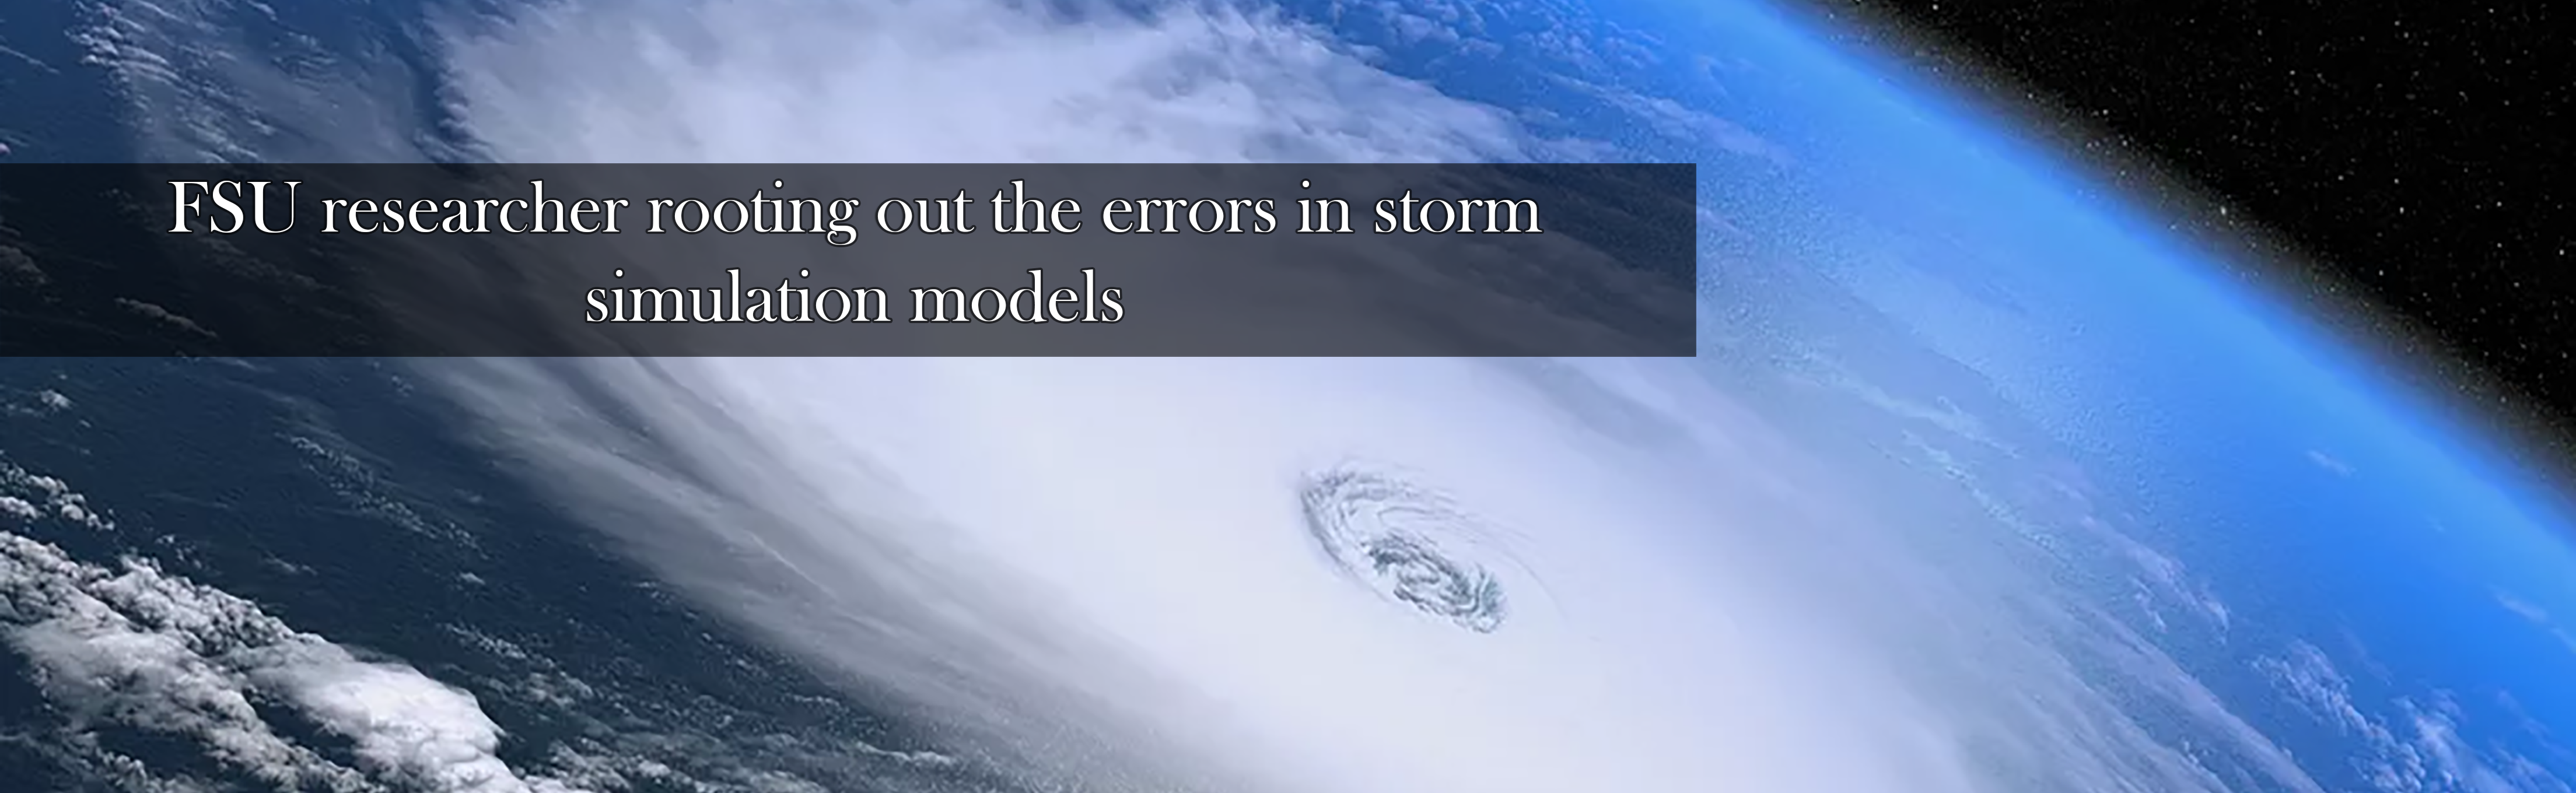 FSU researcher rooting out the errors in storm simulation models